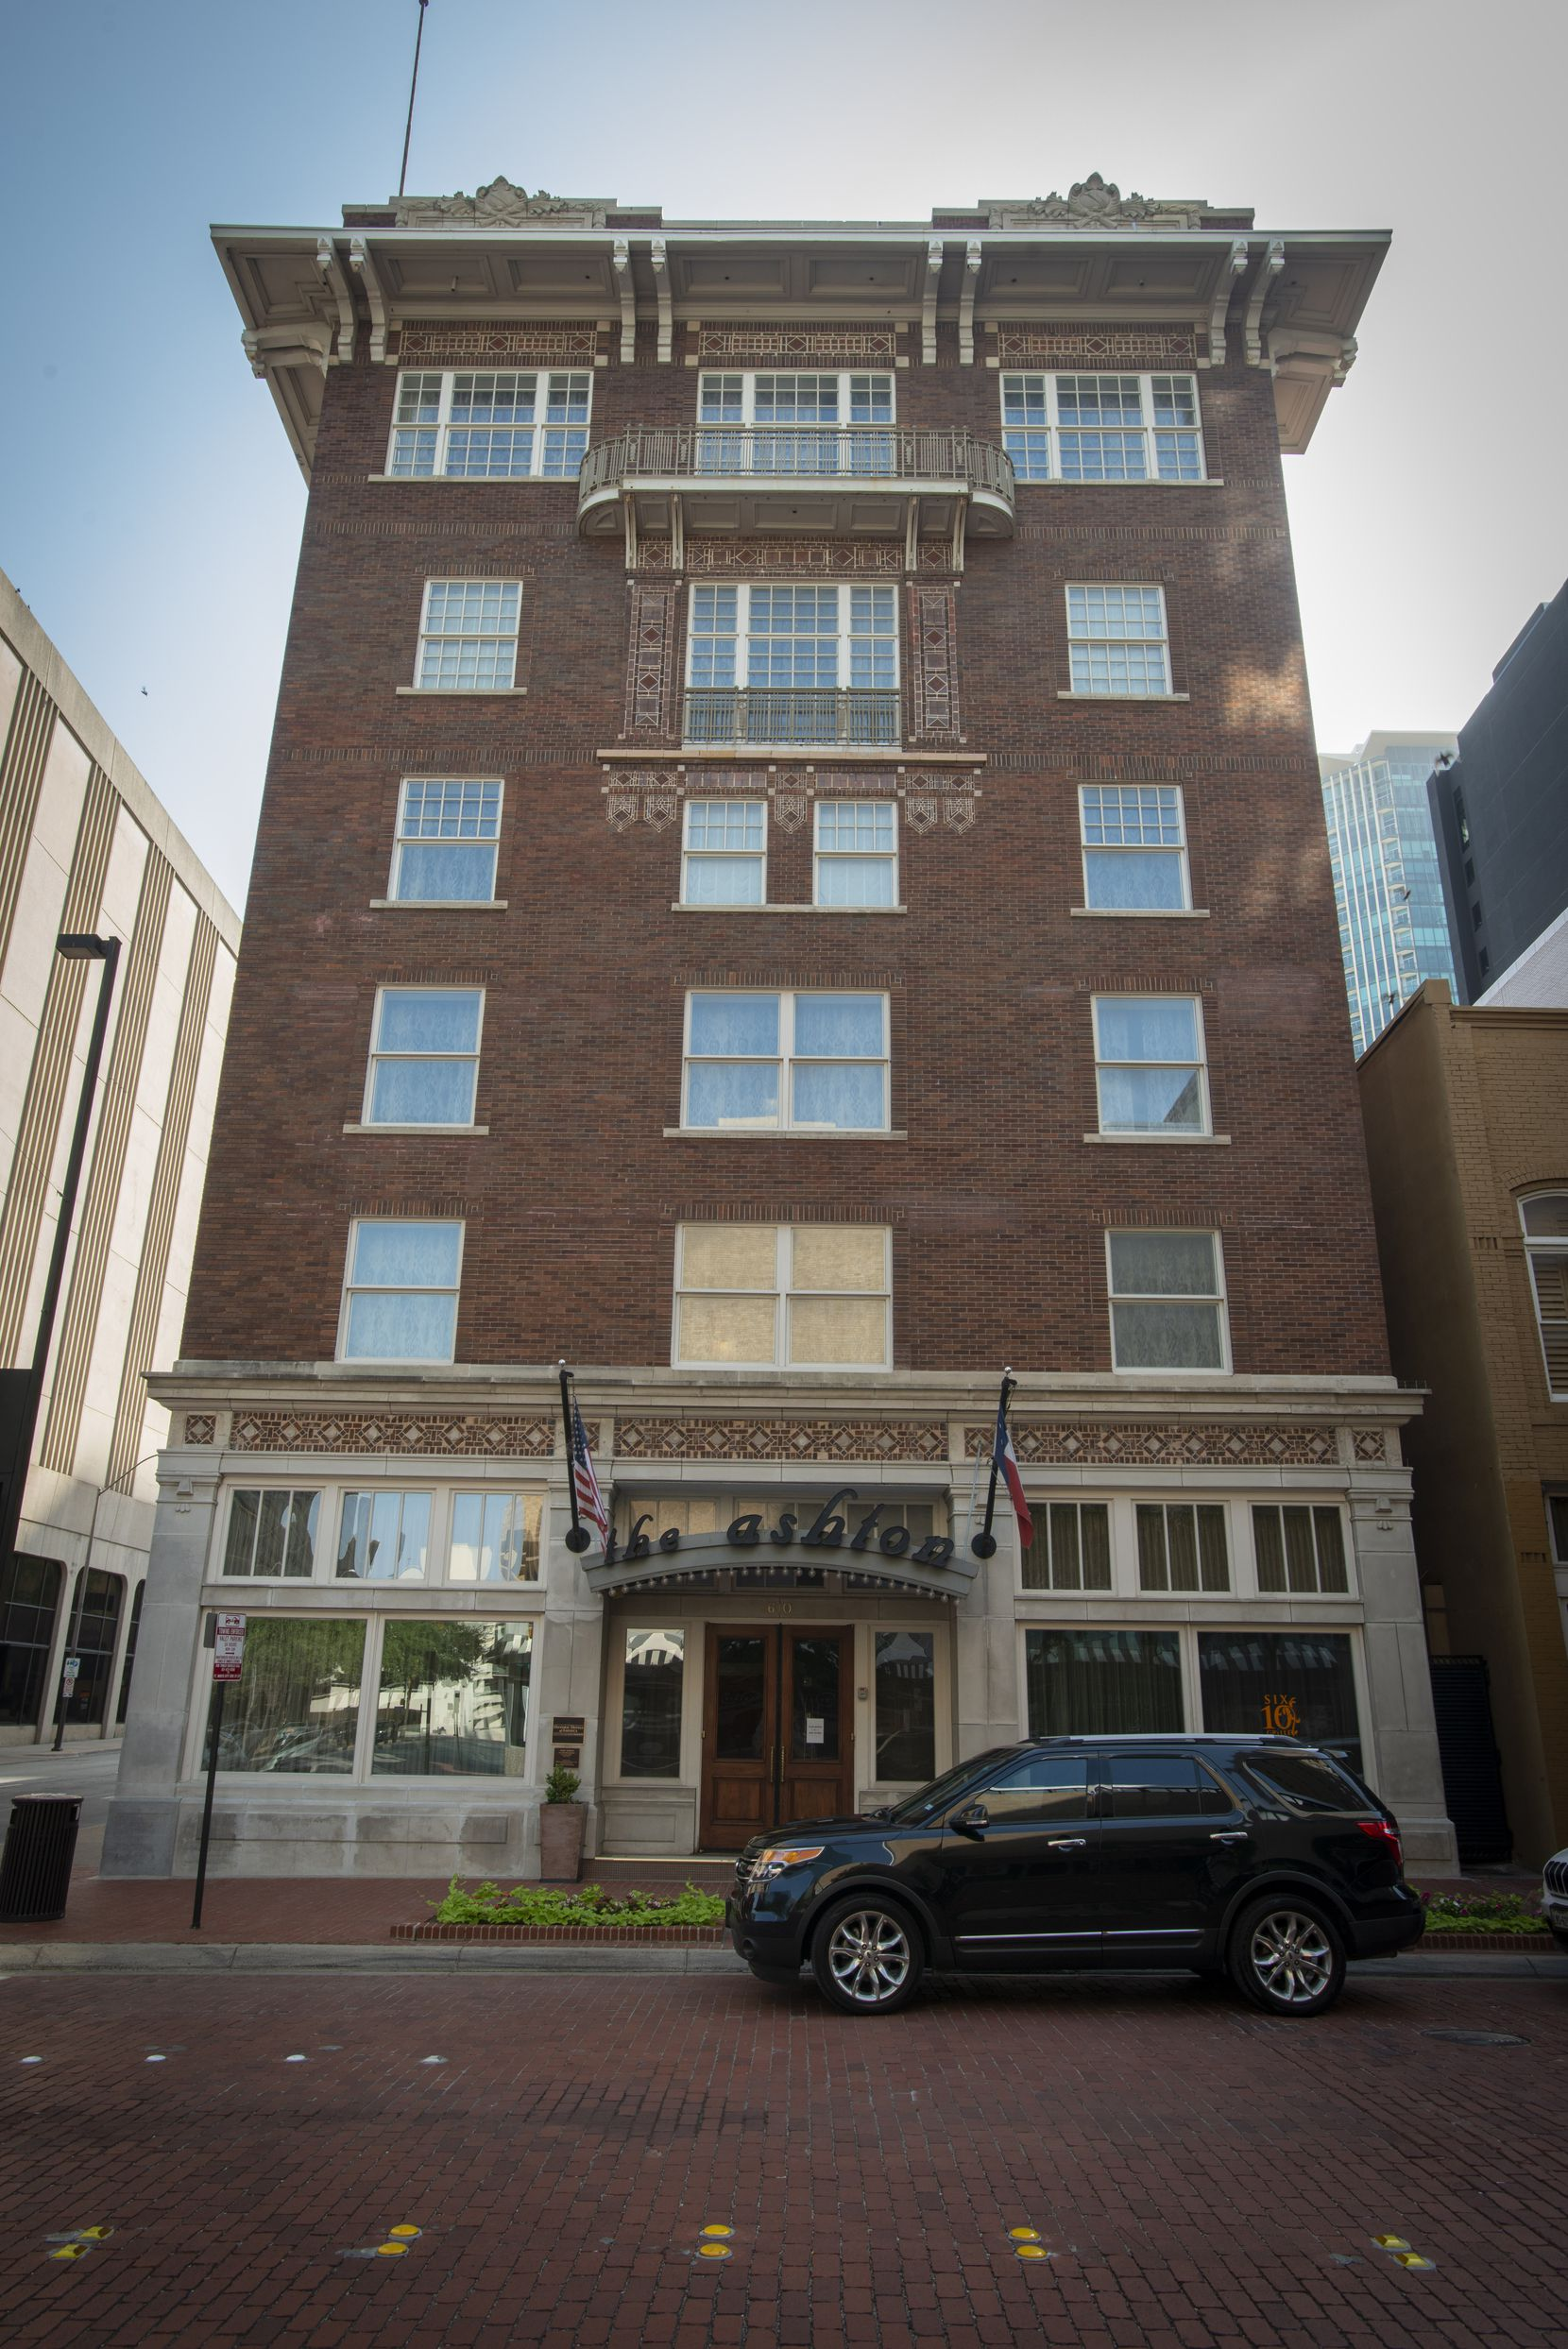 Ashford Hospitality Trust owns The Ashton in Fort Worth, a boutique hotel that holds a coveted spot on the Historic Hotels of America roster.